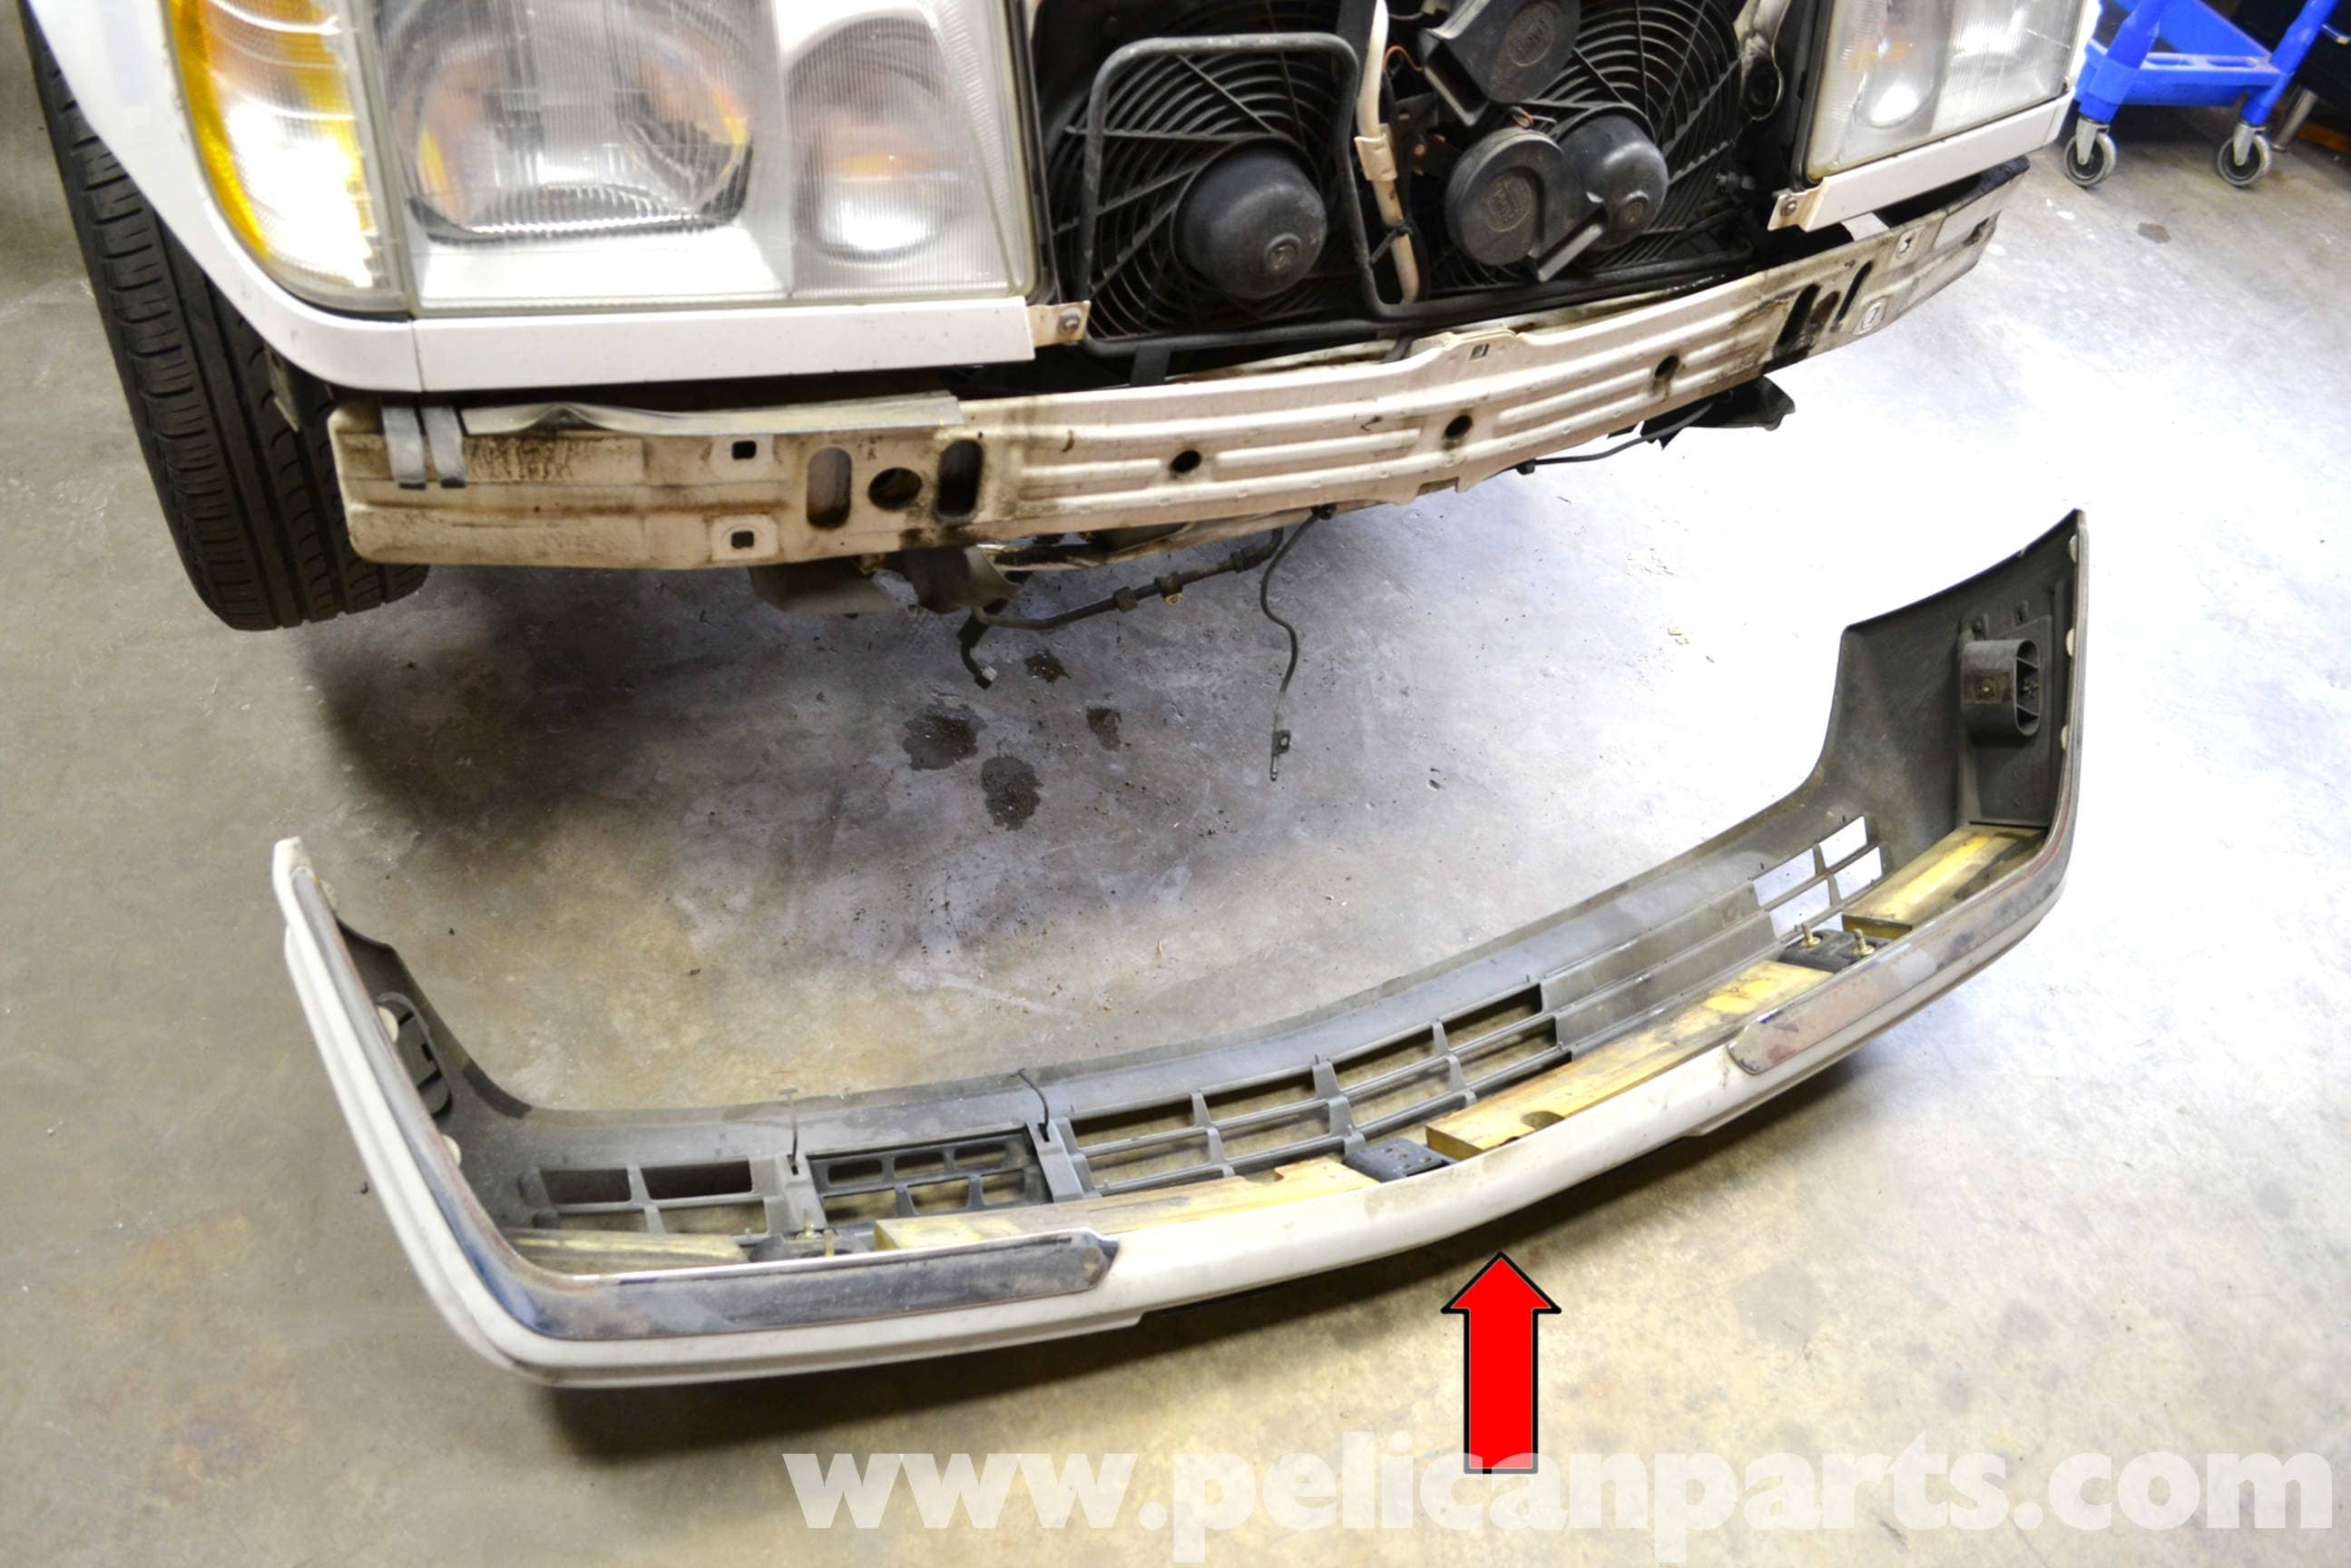 Mercedes Benz W124 Front Bumper Removal 1986 1995 E Class Wiring Harness Replacement Large Image Extra